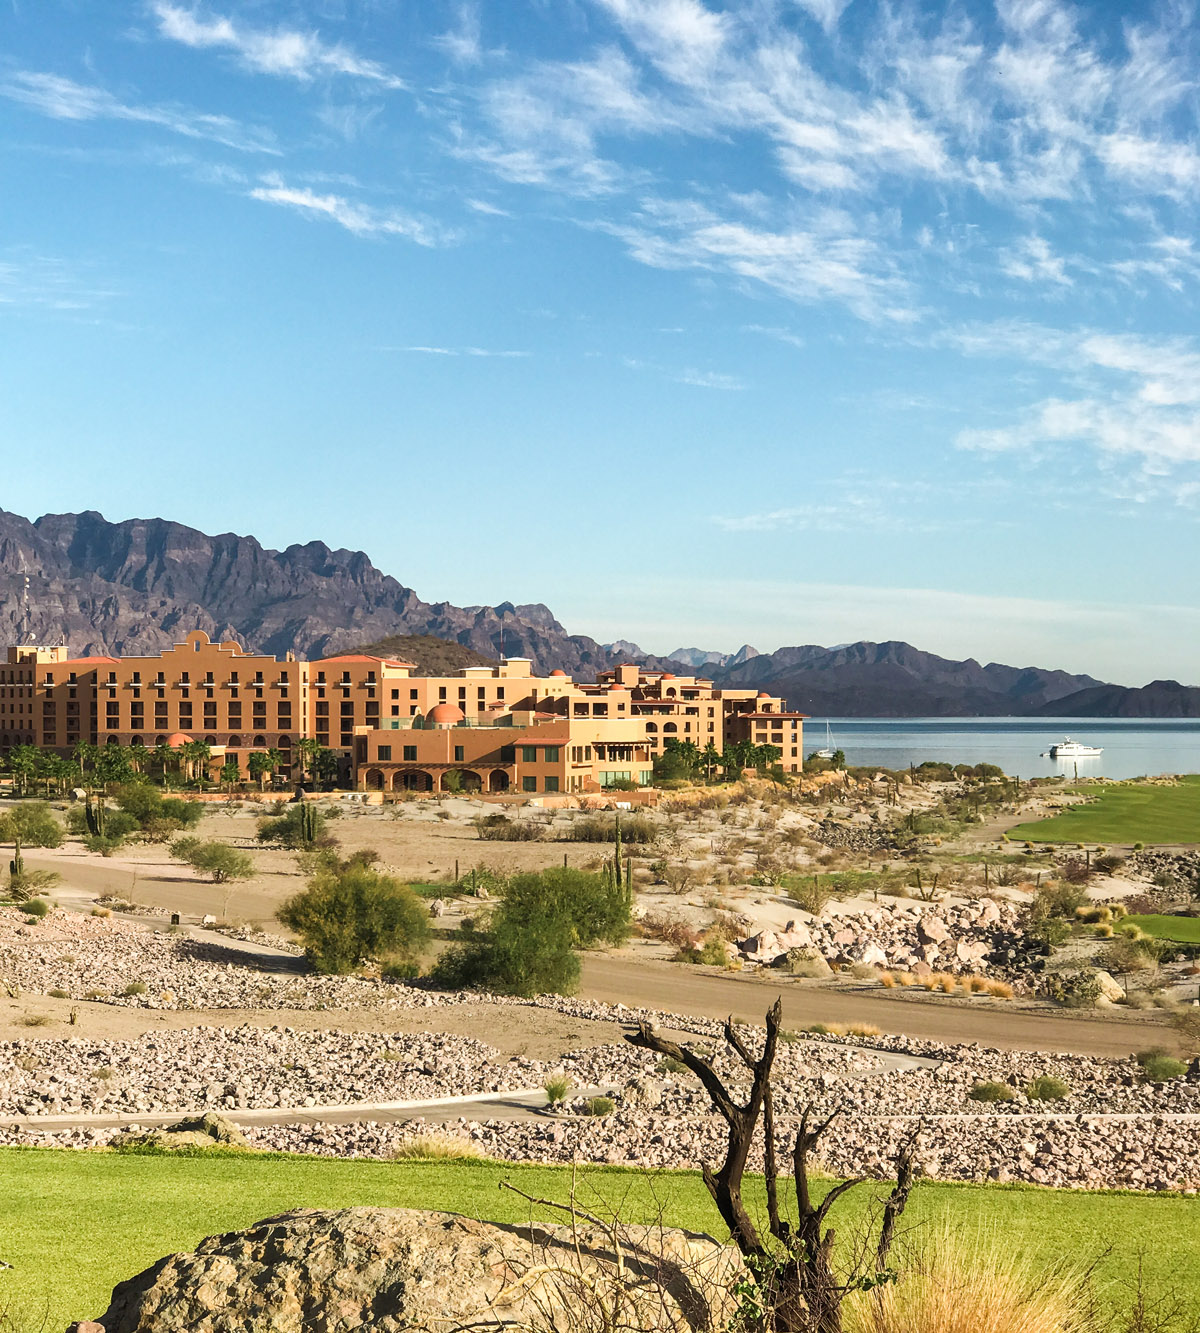 Golfing at the Villa del Palmar at the Islands of Loreto. Looking for the BEST vacation destination to treat yourself? From a quiet getaway to soak up the sun or to enjoy your honeymoon, the Villa del Palmar at the Islands of Loreto, Mexico is one of those hidden gems you need to visit for yourself. This unique, affordable vacation destination is packed with fun activities such as golfing, kayaking, paddle boarding, snorkeling, scuba diving, yoga, dancing, whale watching, and fishing. Whatever you're looking for in your upcoming getaway, Villa del Palmar offers it!